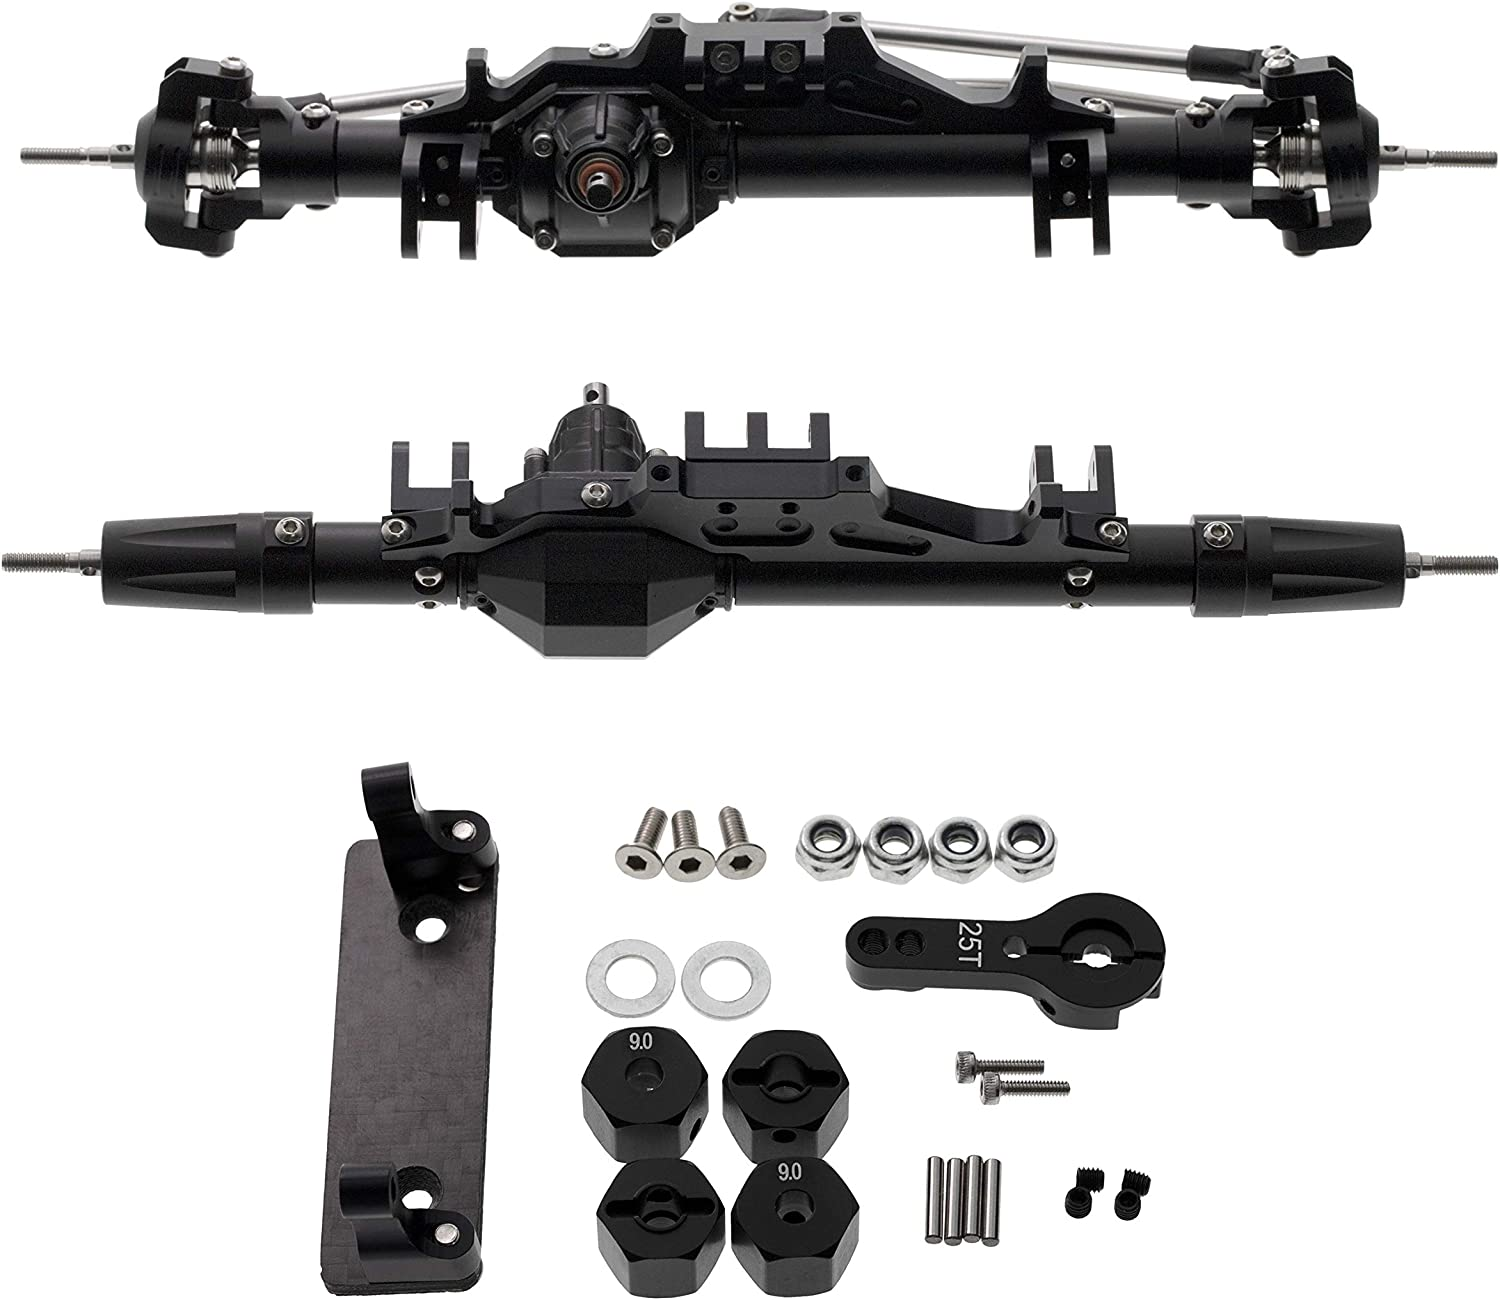 Max 88% OFF Ky-RC Aluminum Complete Front Rear Axle 1 Save money Ro Crawler 10 for RC